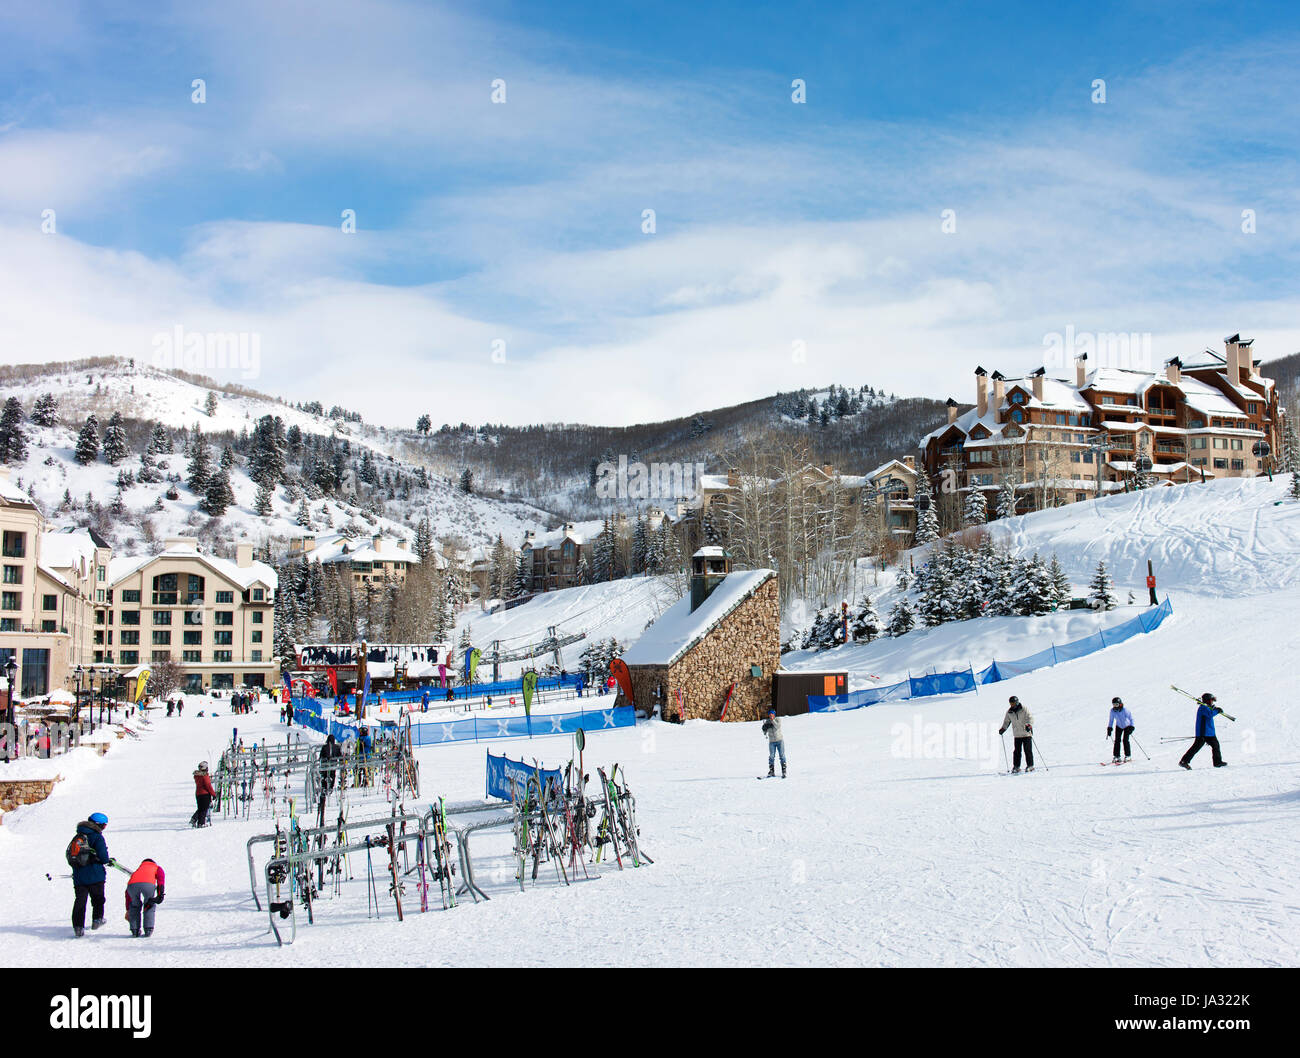 Skiers and accommodation buildings at Beaver Creek, a ski resort near Avon, Colorado. - Stock Image